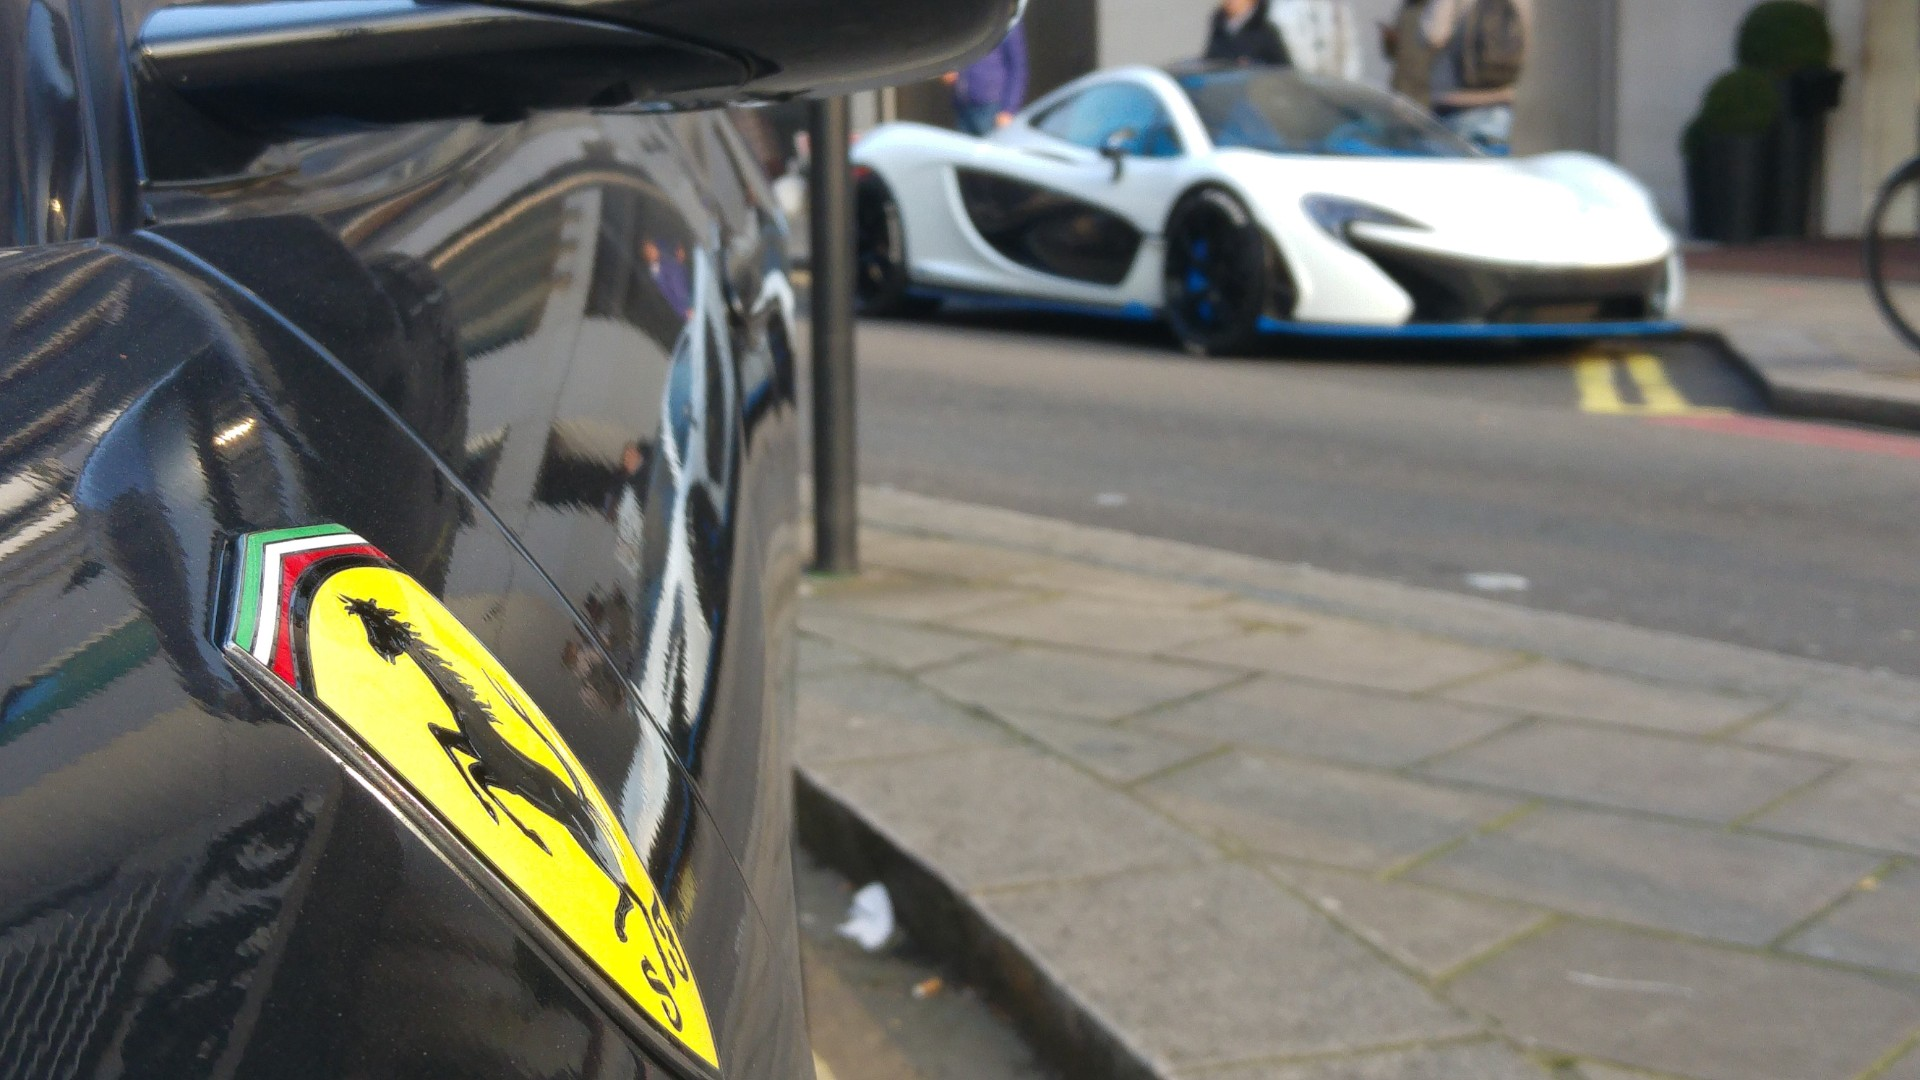 Sound cameras could catch noisy London supercars